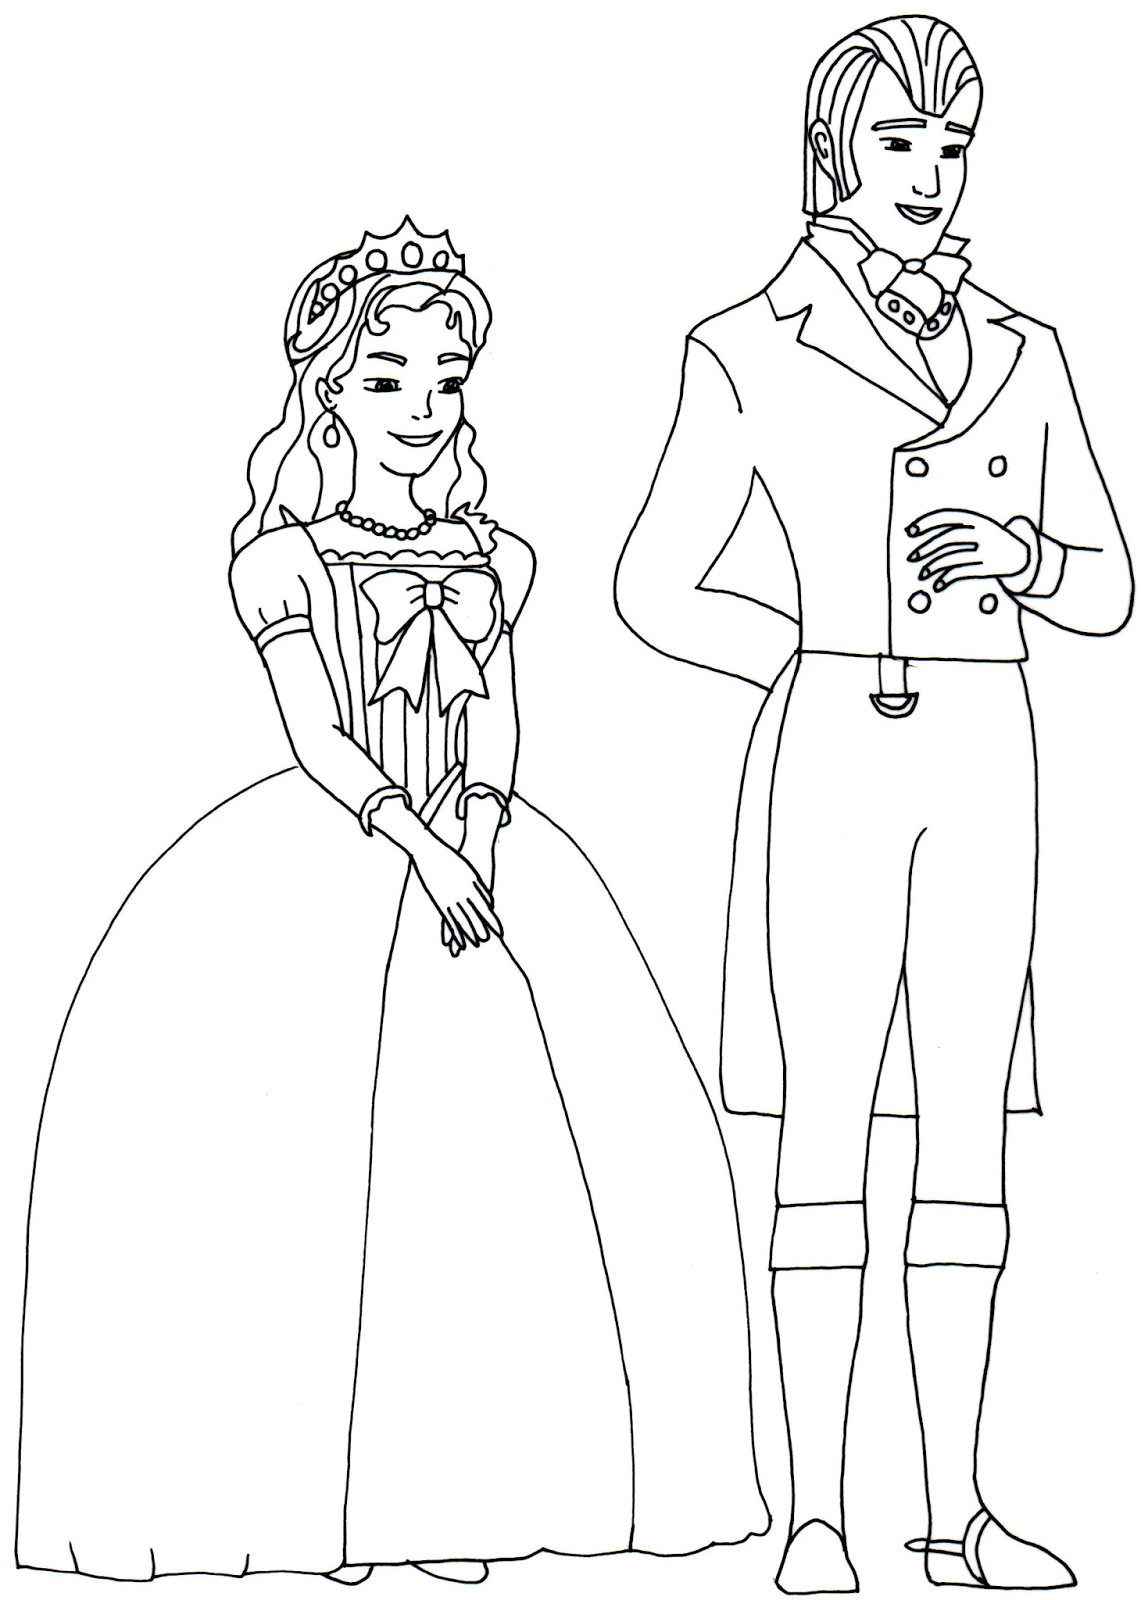 sofia the first cedric - Google Search | Art work fun to do ...